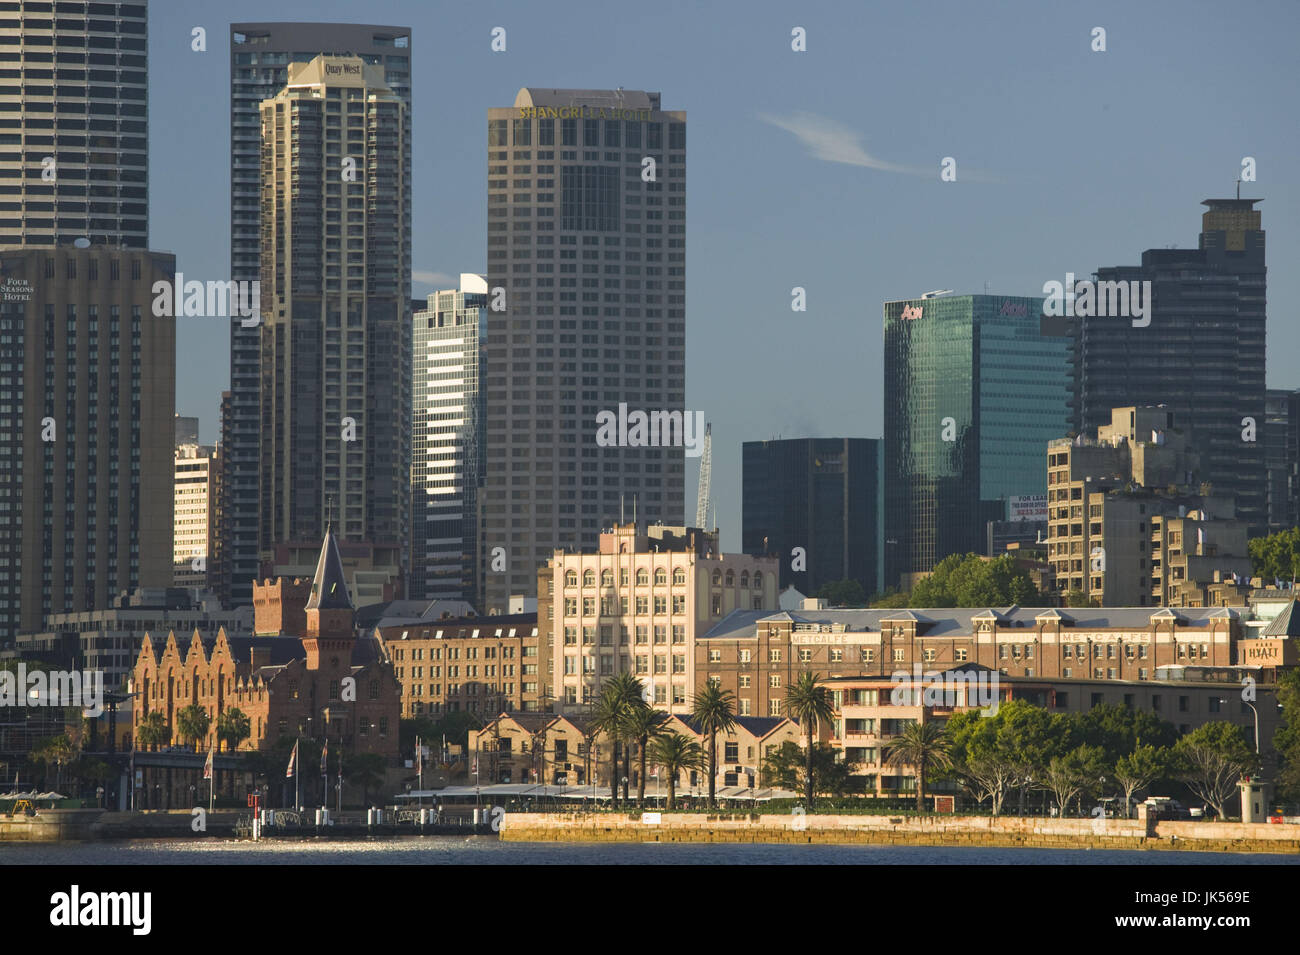 Australia, New South Wales, Sydney, Sydney and The Rocks Historic Area seen from Kirribilli, morning, - Stock Image